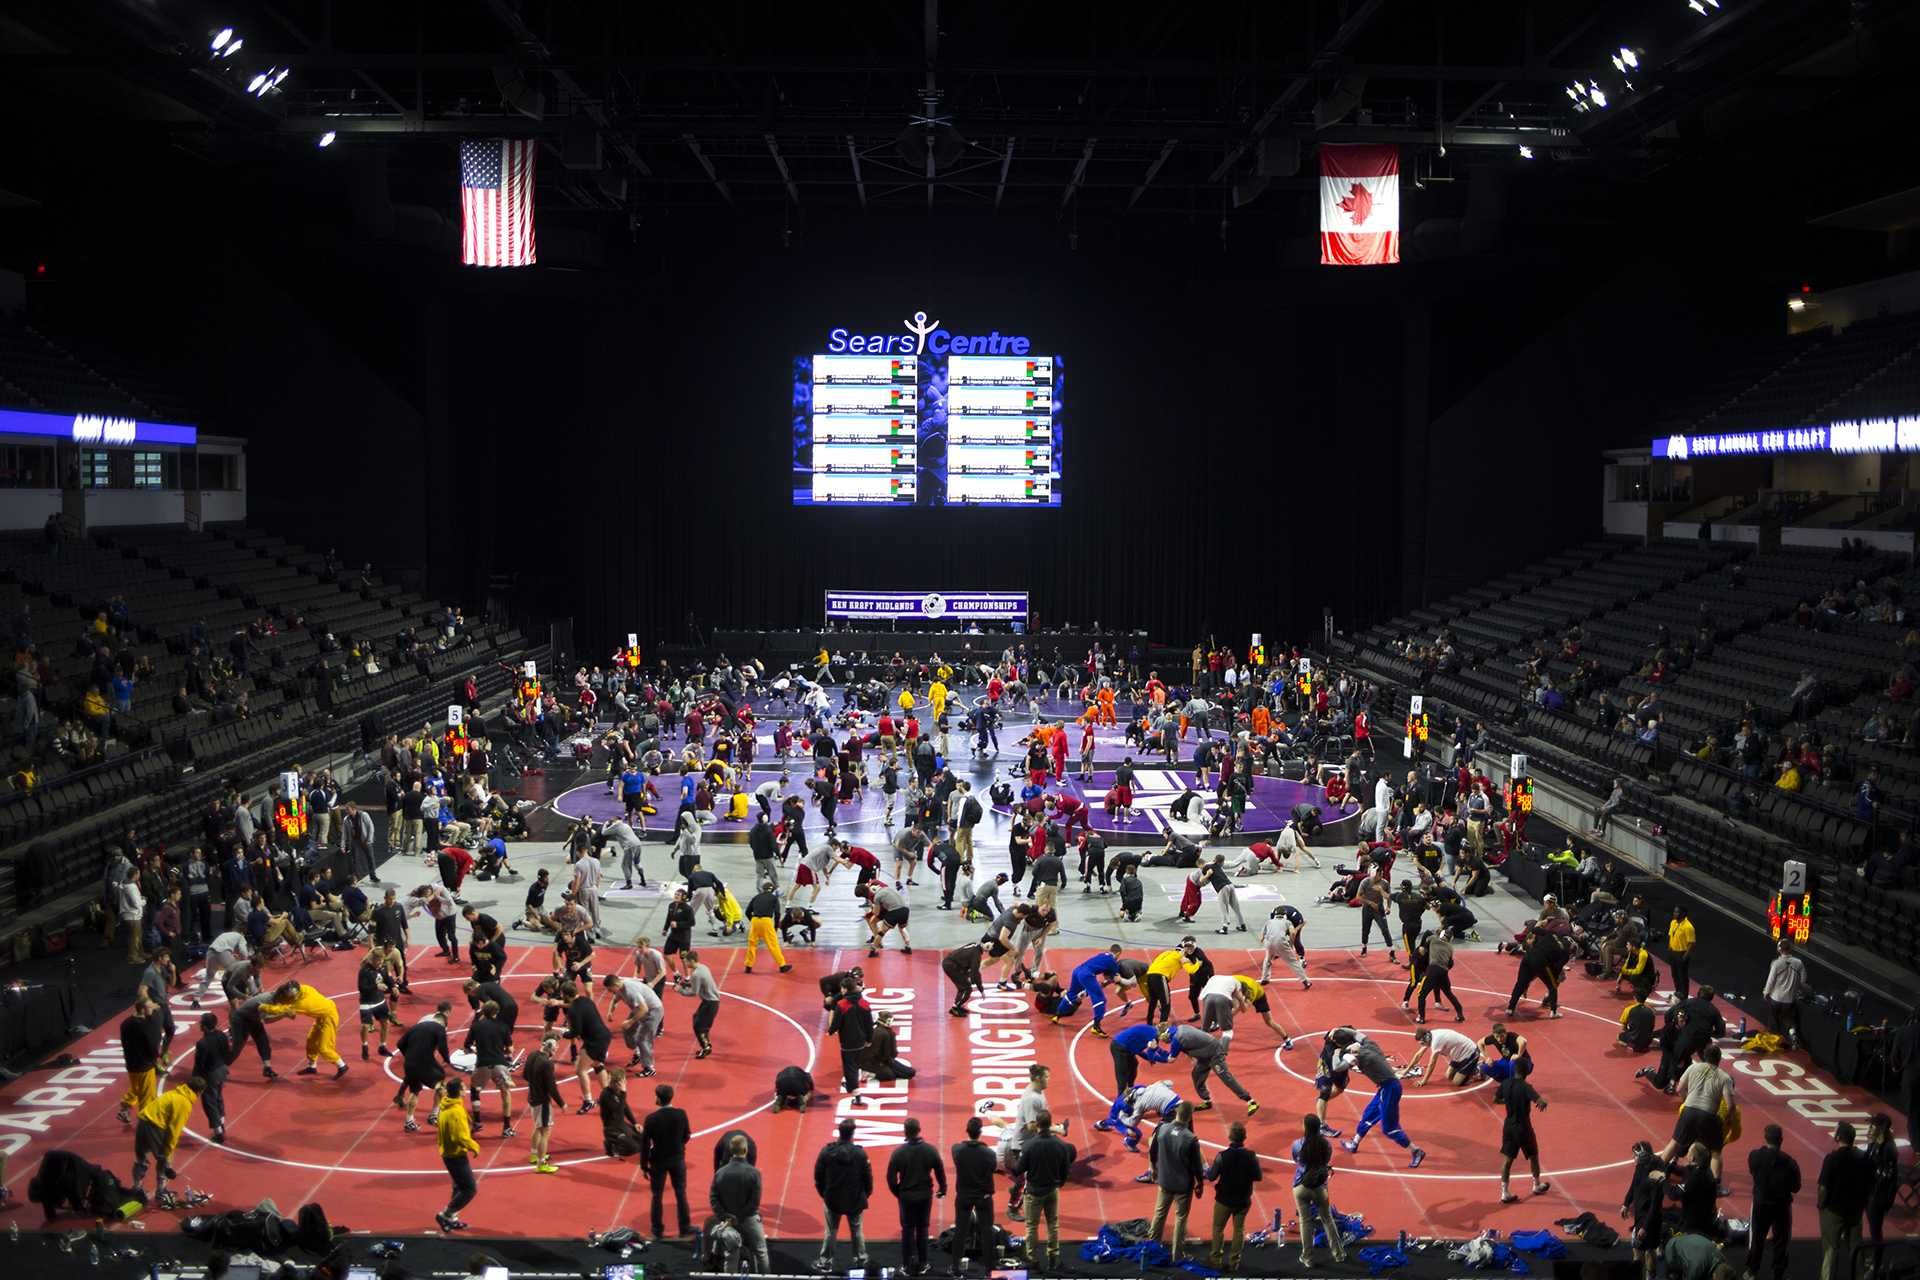 Mats fill up with wrestlers while they warmup before the first session of the 55th Annual Midlands Championships in the Sears Centre in Hoffman Estates, Illinois, on Friday, Dec. 29, 2017. (Joseph Cress/The Daily Iowan)